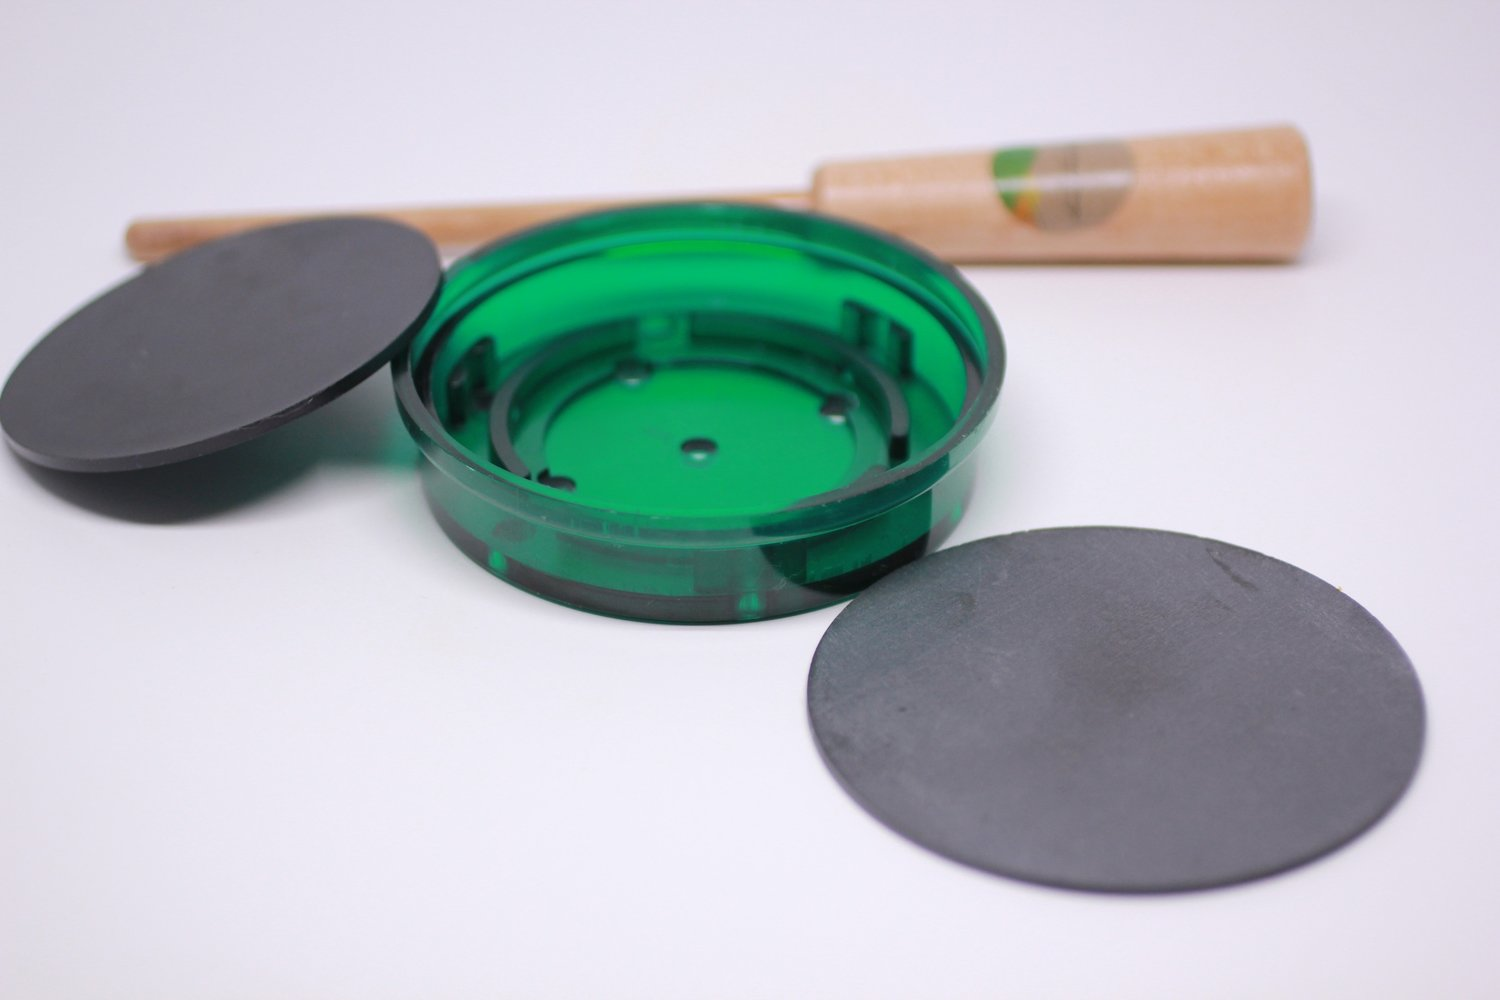 Turkey Pot Call Kit Slate/Polymer (Green) Build Your Own with Free Striker